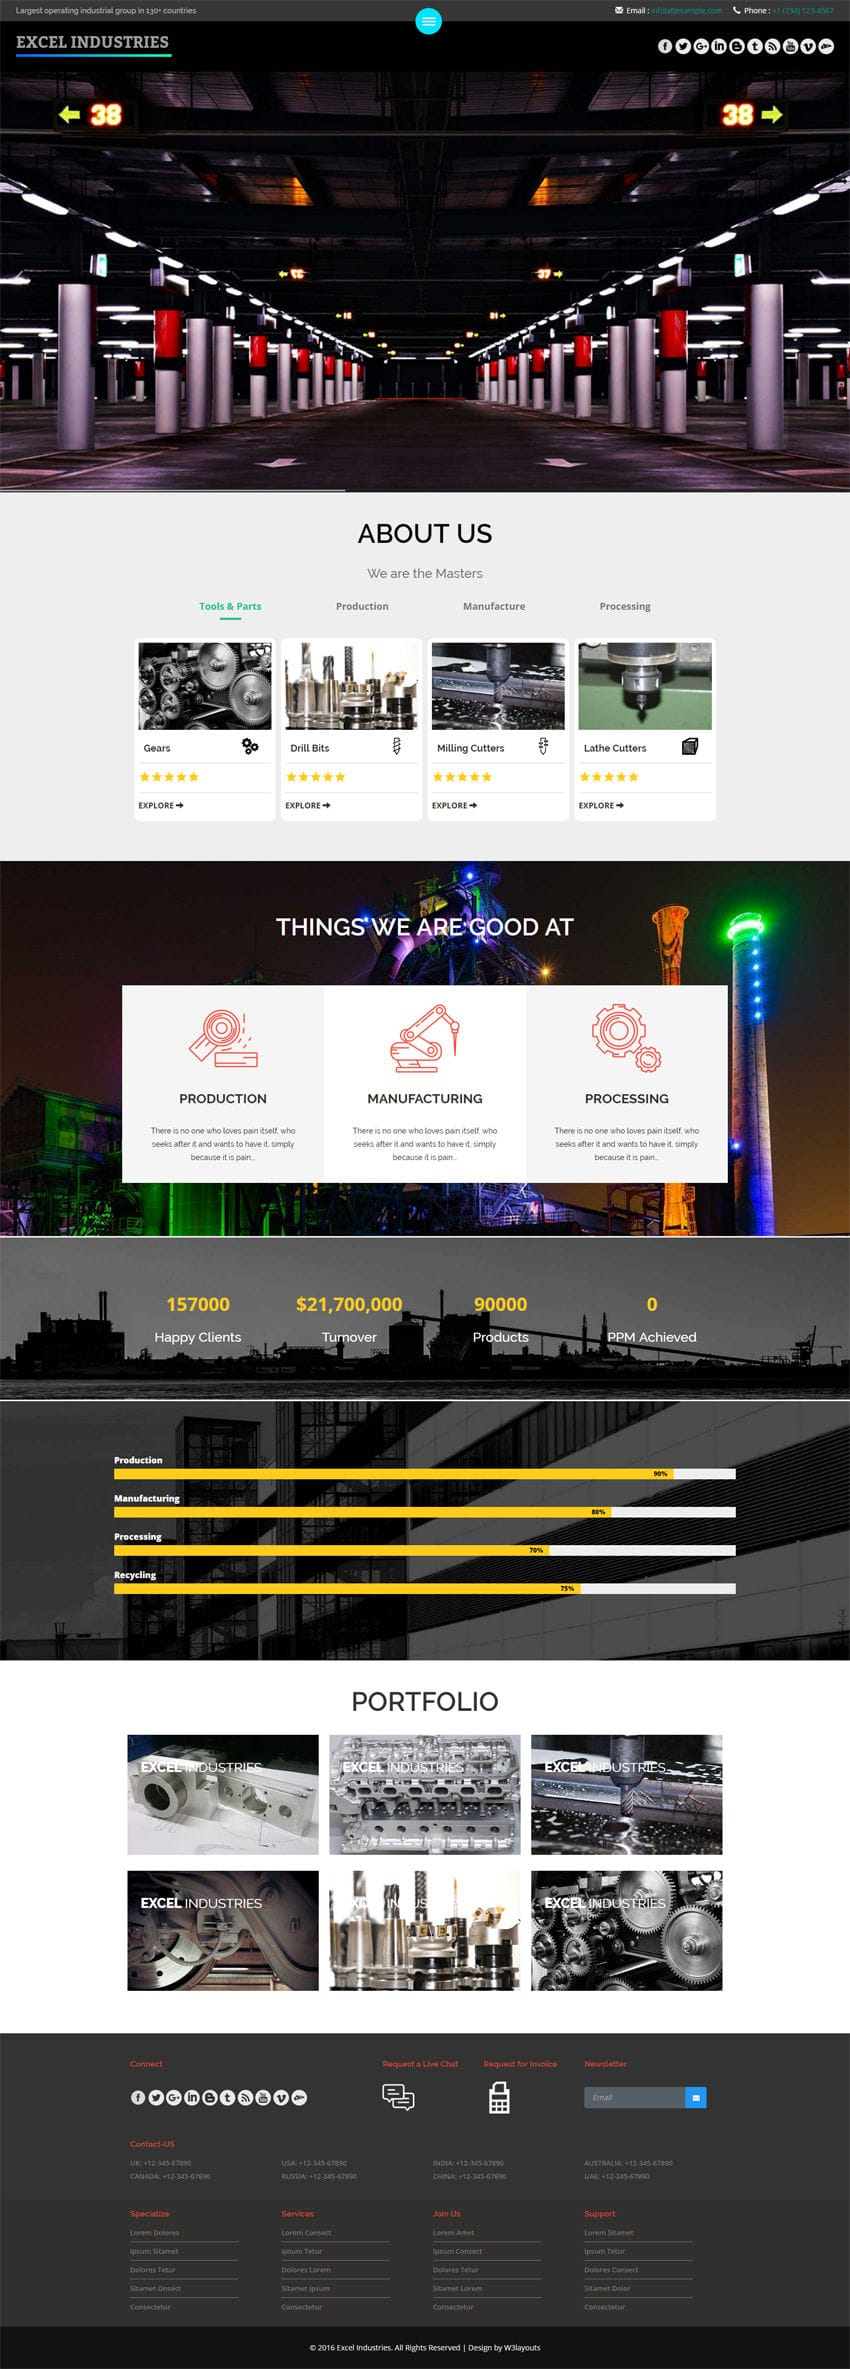 Excel Industries a Industrial Flat Bootstrap Responsive